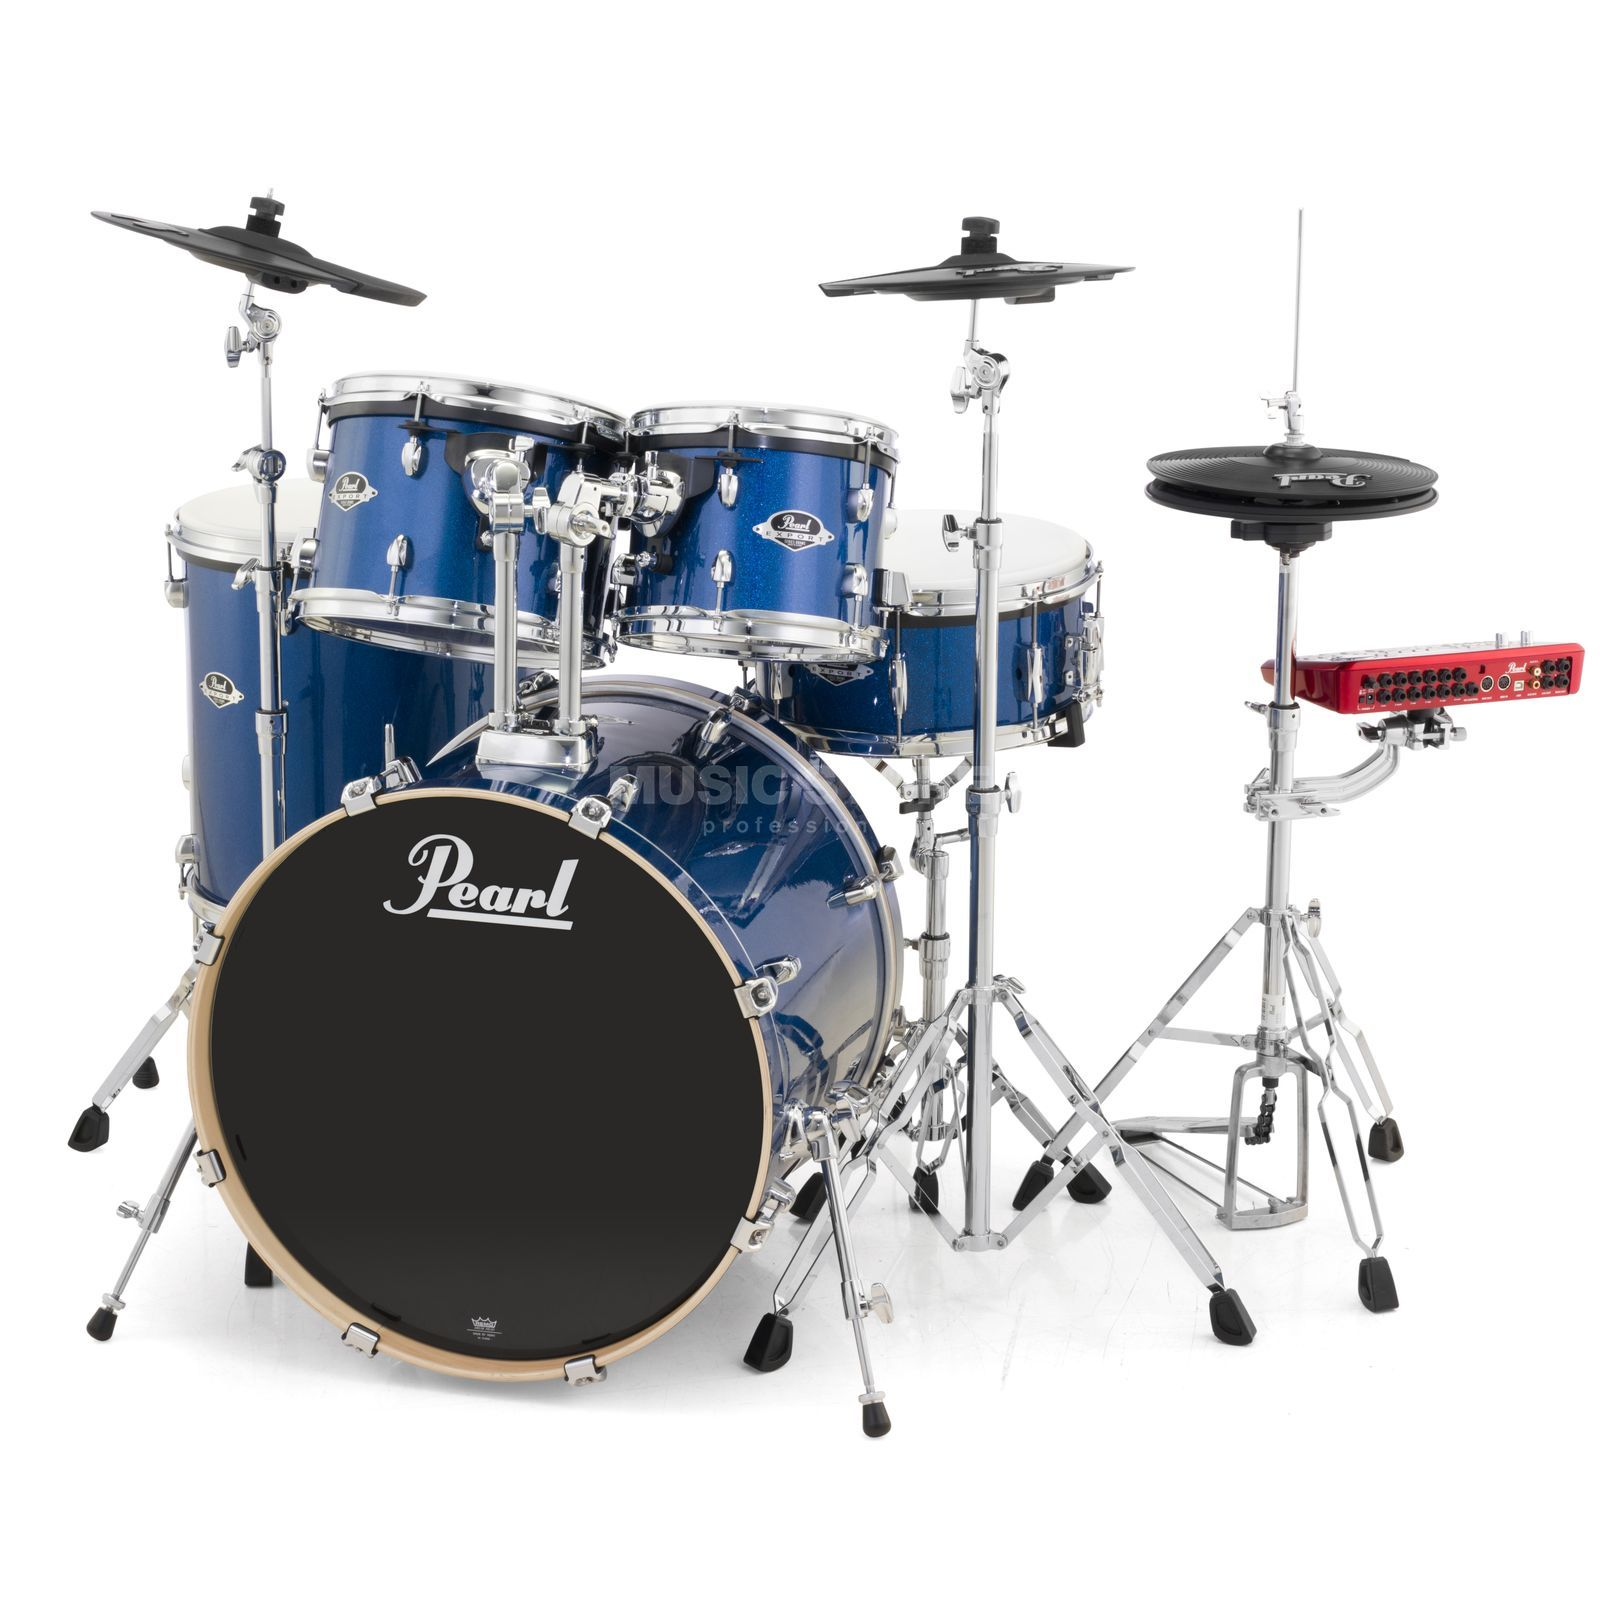 Pearl ePro Live E-DrumSet EPEXX725S/C, Electric Blue Sp. Produktbillede